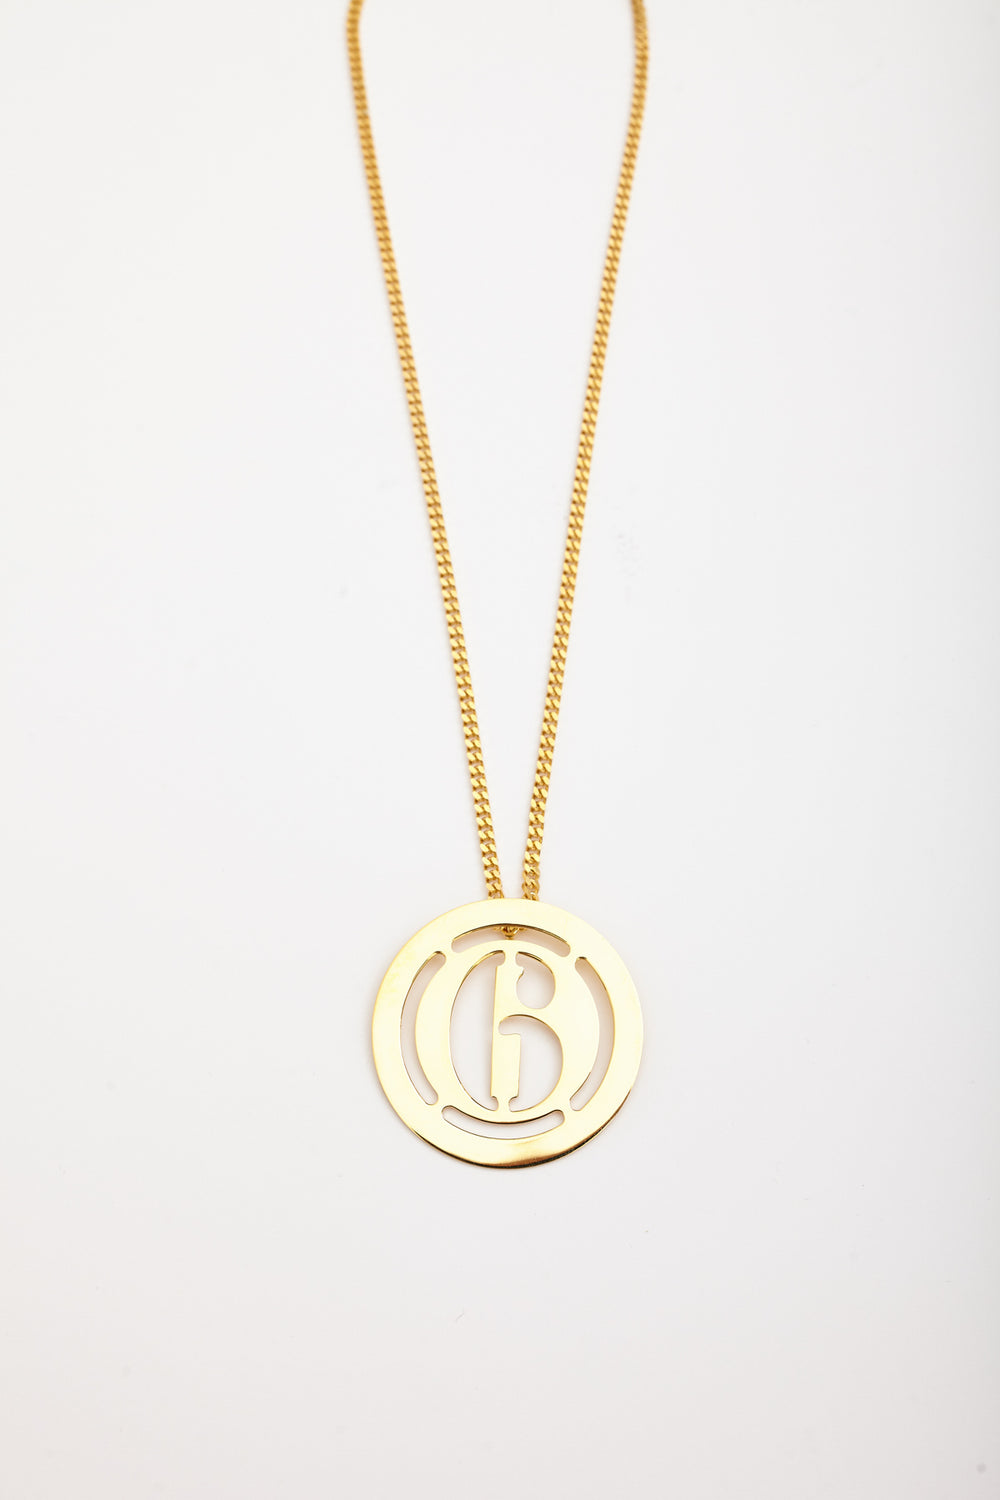 LOGO NECKLACE - GOLD - Studio Avra